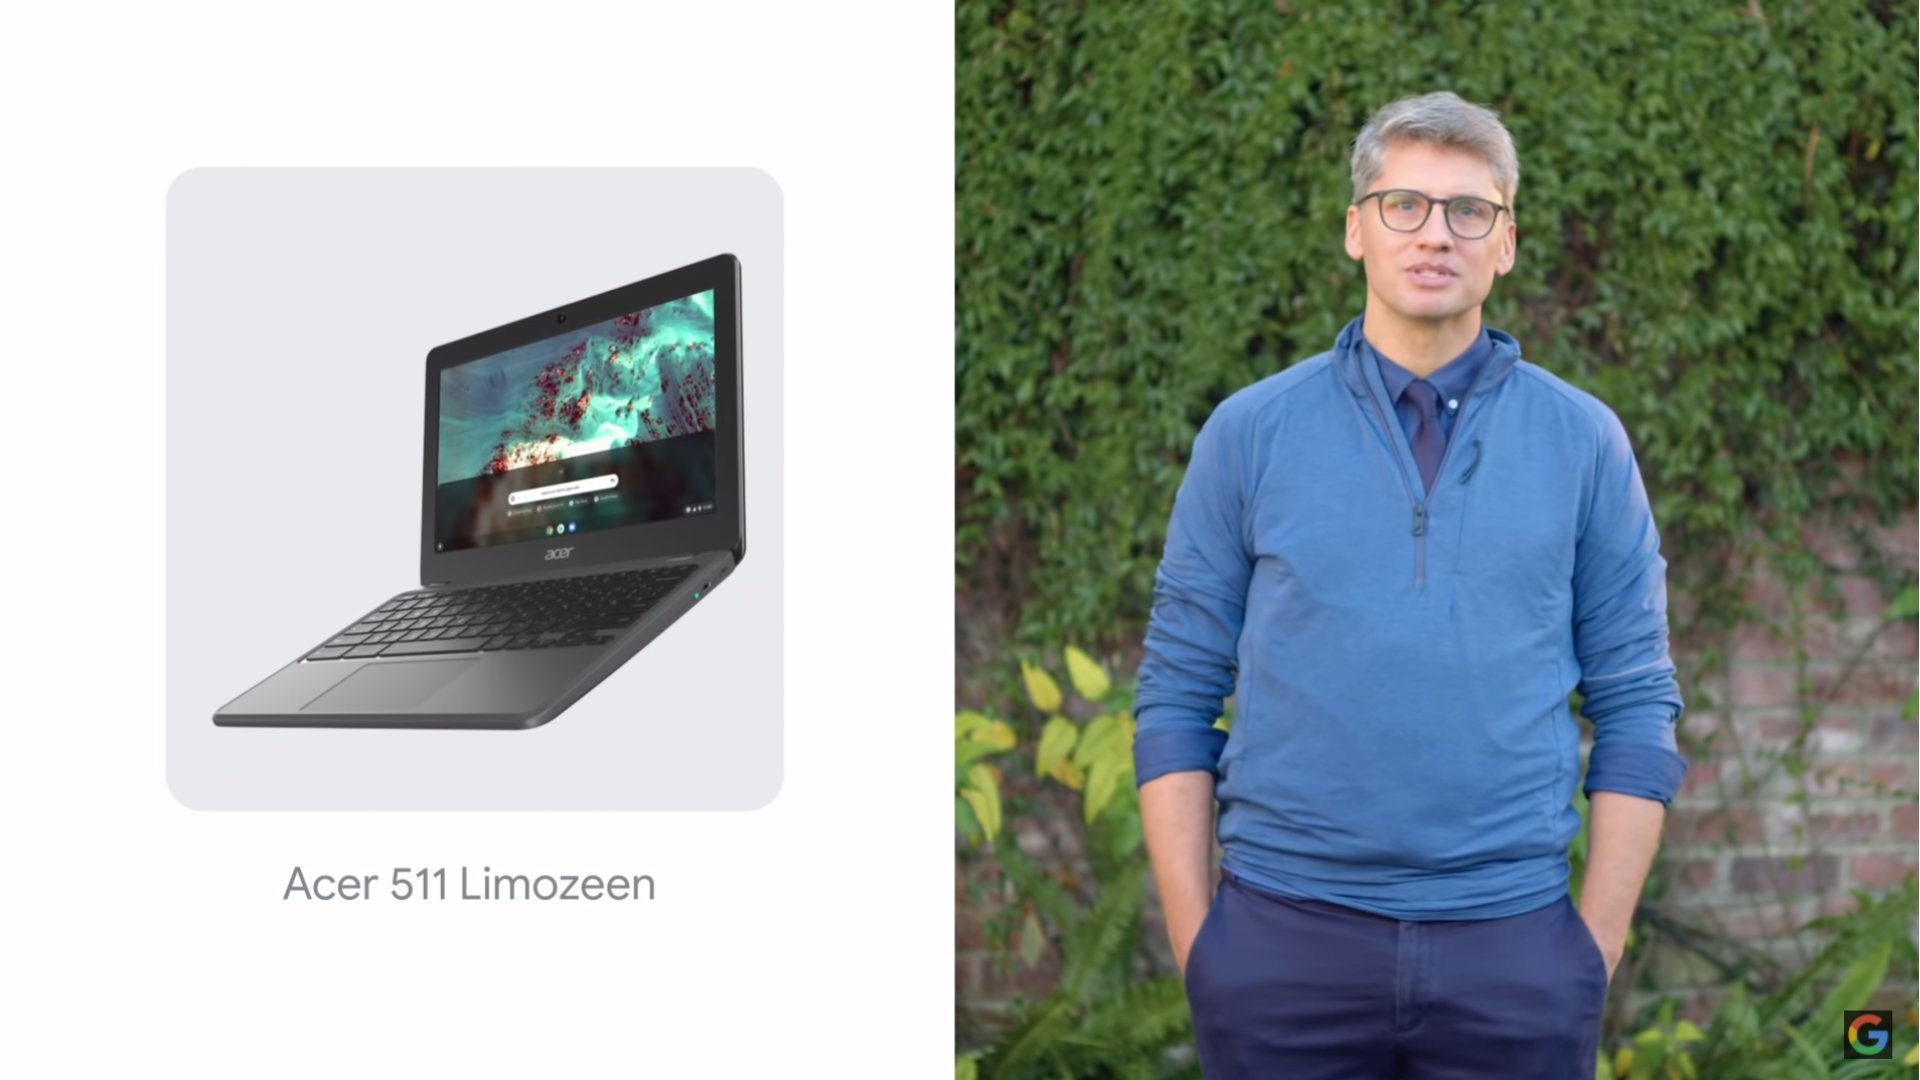 Google accidentally unveils Snapdragon LTE-ready Chromebook 'Limozeen' a little early